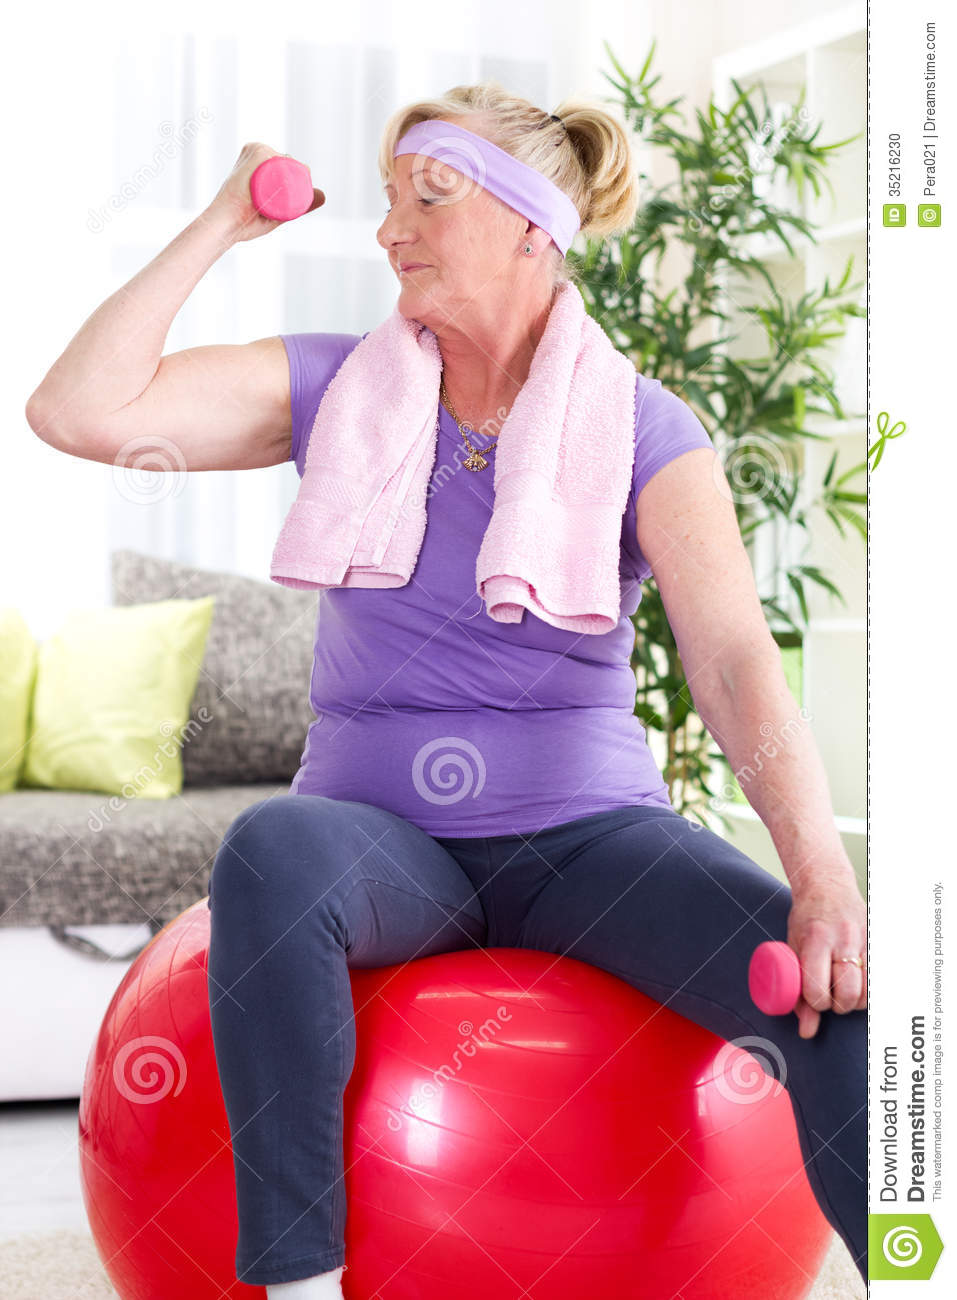 naked woman sitting on gym ball